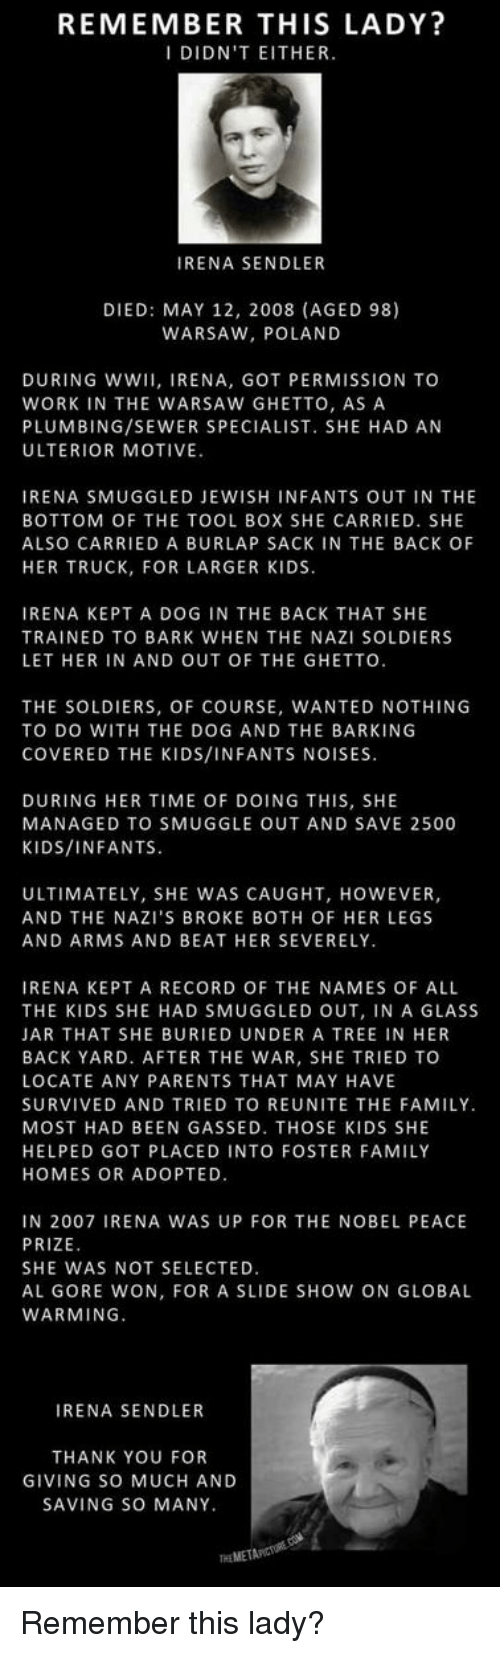 Al Gore: REMEMBER THIS LADY?  DIDN'T EITHER.  RENA SENDLER  DIED: MAY 12, 2008 (AGED 98)  WARSAW, POLAND  DURING WW  RENA, GOT PERMISSION TO  WORK IN THE WARSAW GHETTO, AS A  PLUMBING/SEWER SPECIALIST. SHE HAD AN  ULTERIOR MOTIVE  IRENA SMUGGLED JEWISH INFANTS OUT IN THE  BOTTOM OF THE TOOL BOX SHE CARRIED. SHE  ALSO CARRIED A BURLAP SACK IN THE BACK OF  HER TRUCK, FOR LARGER KIDS  IRENA KEPT A DOG IN THE BACK THAT SHE  TRAINED TO BARK WHEN THE NAZI SOLDIERS  LET HER IN AND OUT OF THE GHETTO  THE SOLDIERS, OF COURSE, WANTED NOTHING  TO DO WITH THE DOG AND THE BARKING  COVERED THE KIDS/INFANTS NOISES.  DURING HER TIME OF DOING THIS, SHE  MANAGED TO SMUG GLE OUT AND SAVE 2500  KIDS/INFANTS.  ULTIMATELY, SHE WAS CAUGHT, HOWEVER,  AND THE NAZI'S BROKE BOTH OF HER LEGS  AND ARMS AND BEAT HER SEVERELY.  IRENA KEPT A RECORD OF THE NAMES OF ALL  THE KIDS SHE HAD SMUGGLED OUT, IN A GLASS  JAR THAT SHE BURIED UNDER A TREE IN HER  BACK YARD. AFTER THE WAR, SHE TRIED TO  LOCATE ANY PARENTS THAT MAY HAVE  SURVIVED AND TRIED TO REUNITE THE FAMILY.  MOST HAD BEEN GASSED. THOSE KIDS SHE  HELPED GOTPLACED INTO FOSTER FAMILY  HOMES OR ADOPTED  IN 2007 IRENA WAS UP FOR THE NOBEL PEACE  PRIZE  SHE WAS NOT SELECTED  AL GORE WON, FOR A SLIDE SHOW ON GLOBAL  WARMING  IRENA SENDLER  THANK YOU FOR  GIVING SO MUCH AND  SAVING SO MANY. Remember this lady?